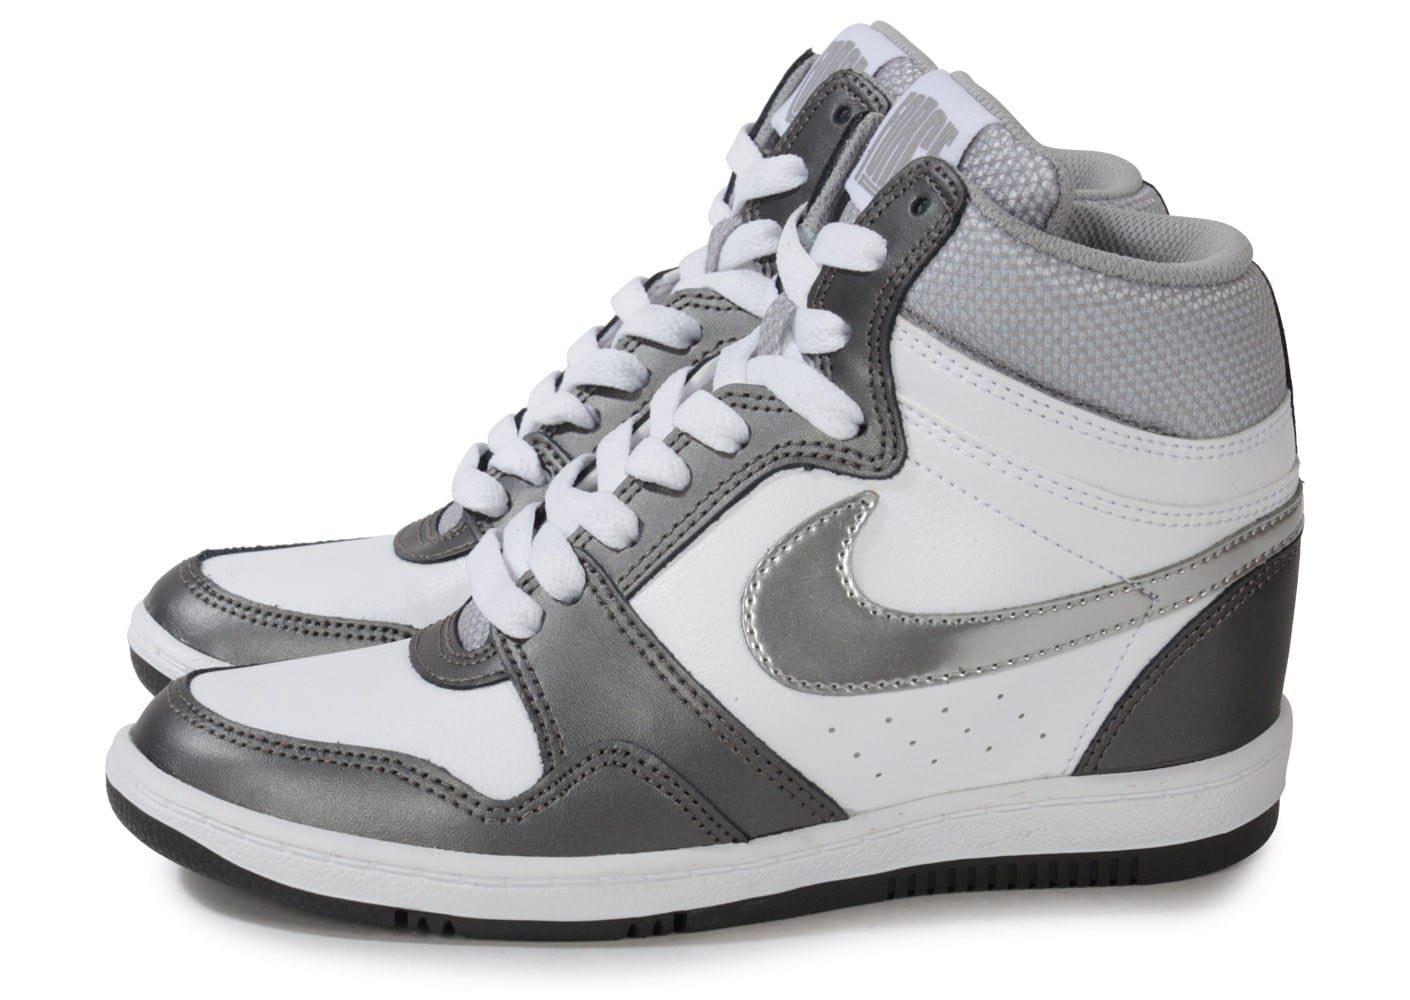 Nike Force Sky Hi Blanche Chaussures Chaussures Chausport